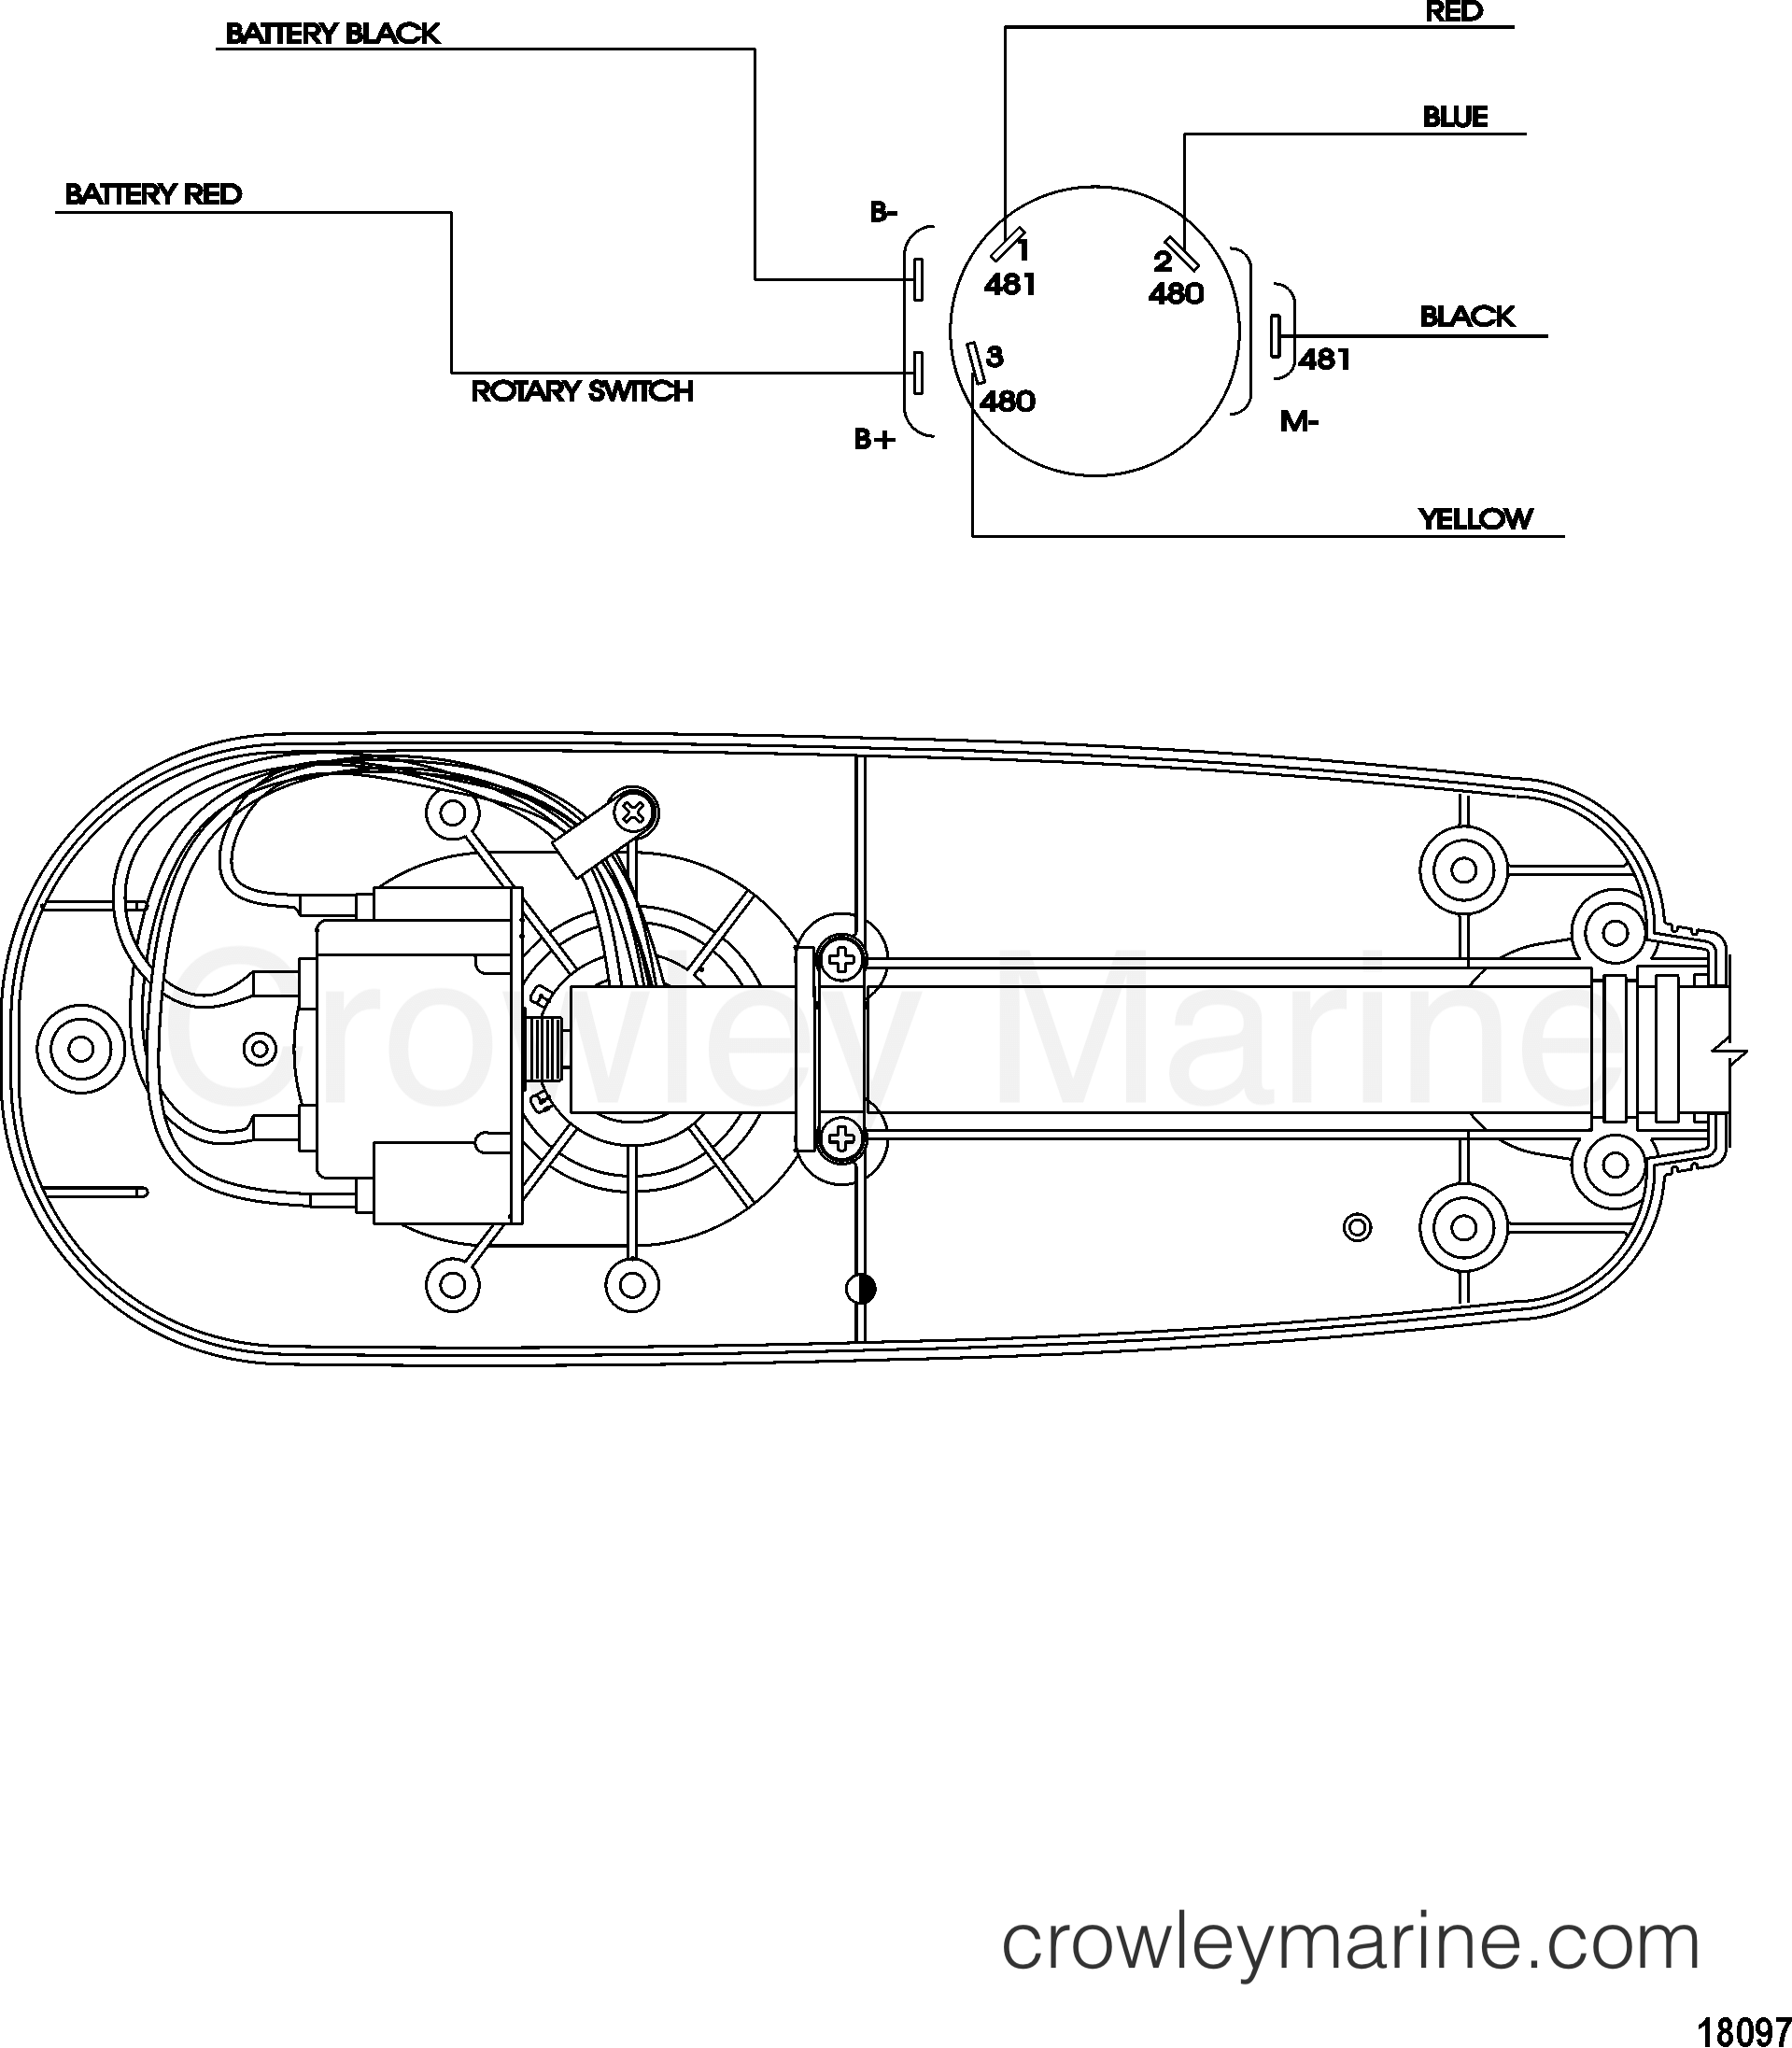 12 volt battery boat wiring diagram wiring diagram photos for help